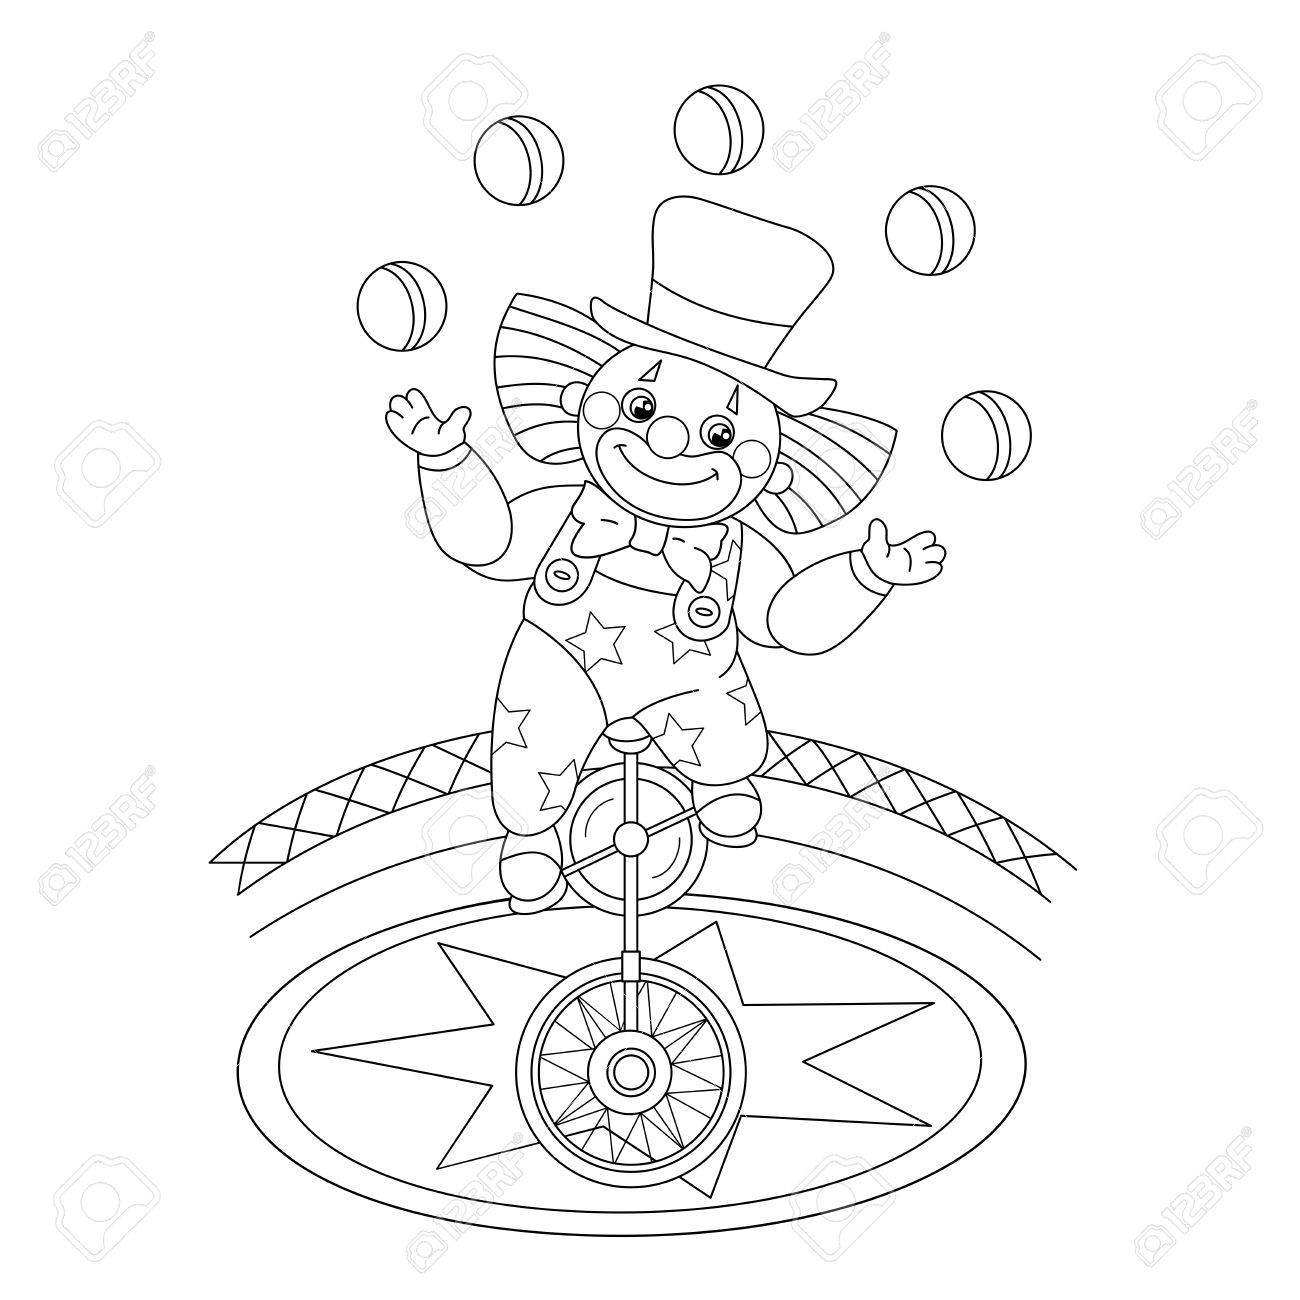 coloring page outline of a funny clown juggling balls coloring